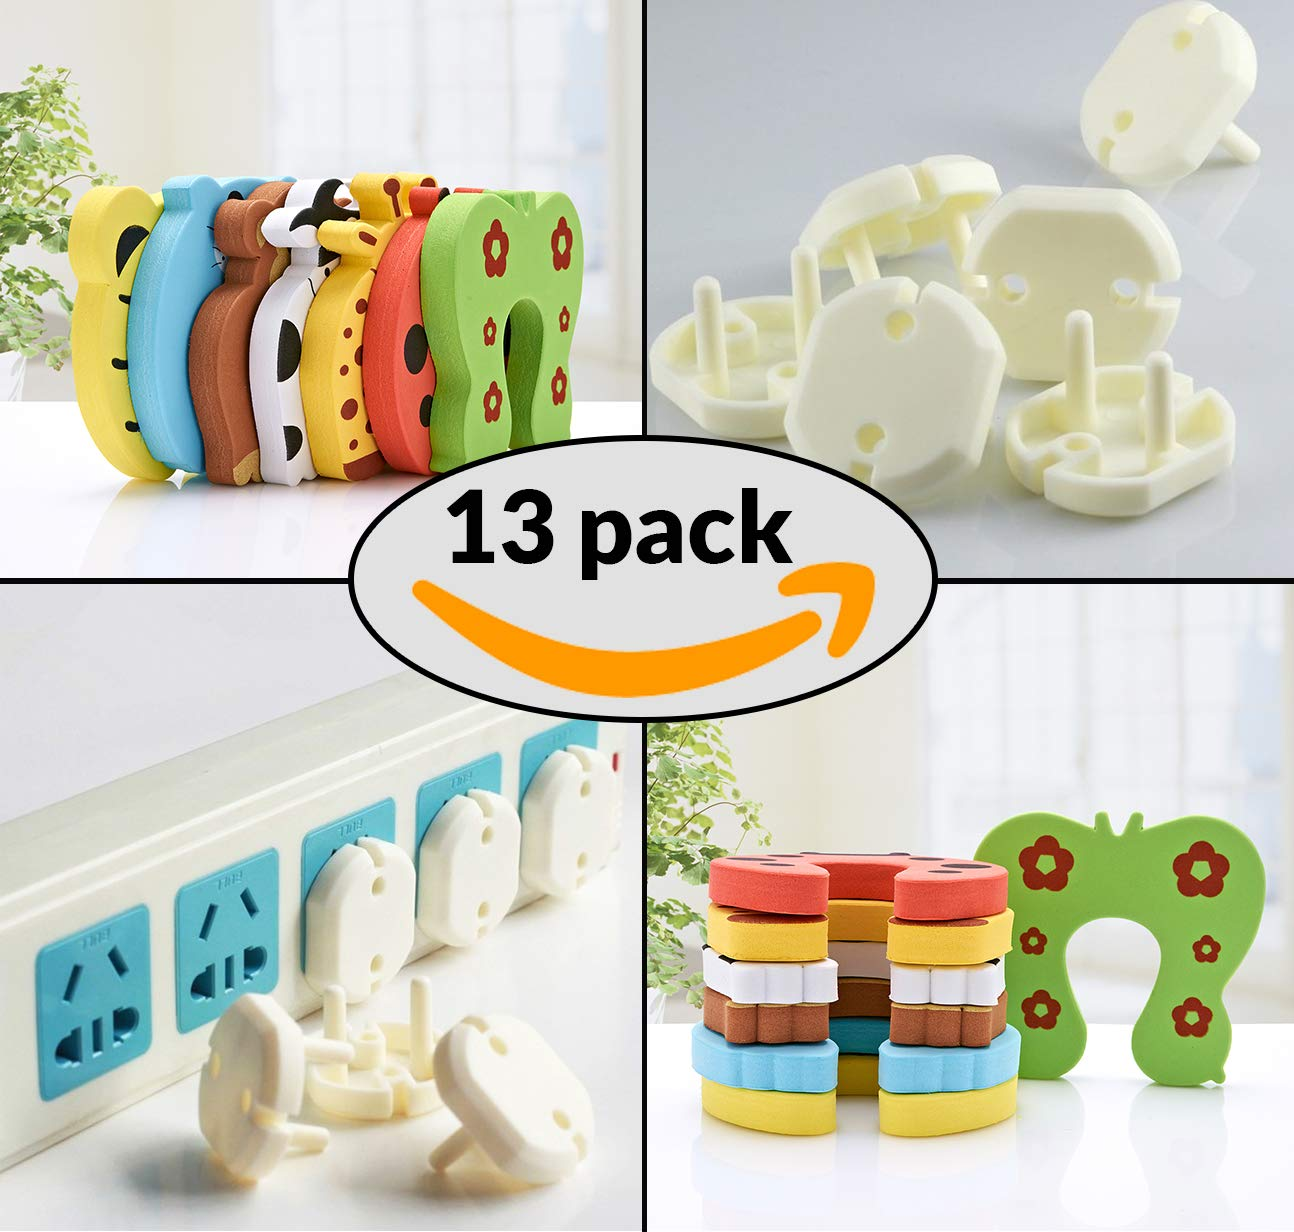 Devnaz 7 pcs Animal Door Stopper and 6pcs Electric Socket Cover Baby Proofing Home Kit - Children Colorful Cartoon Animal Foam Door Stopper with Secure Childproof Socket Covers for Home & Office